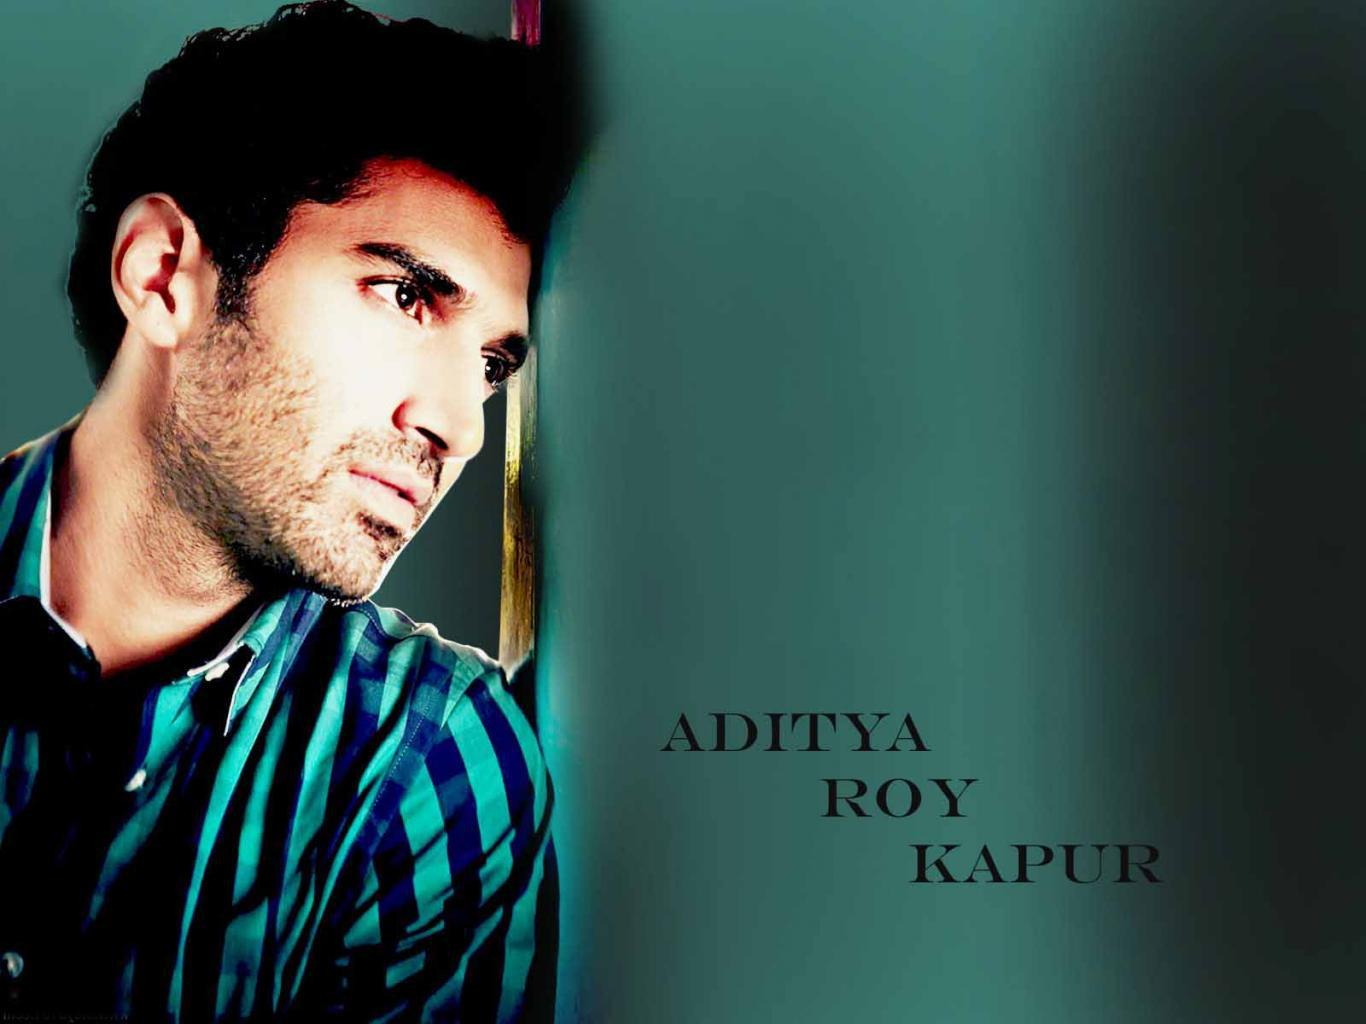 Aashiqui Aditya Roy Kapoor Free Wallpaper Backgrounds